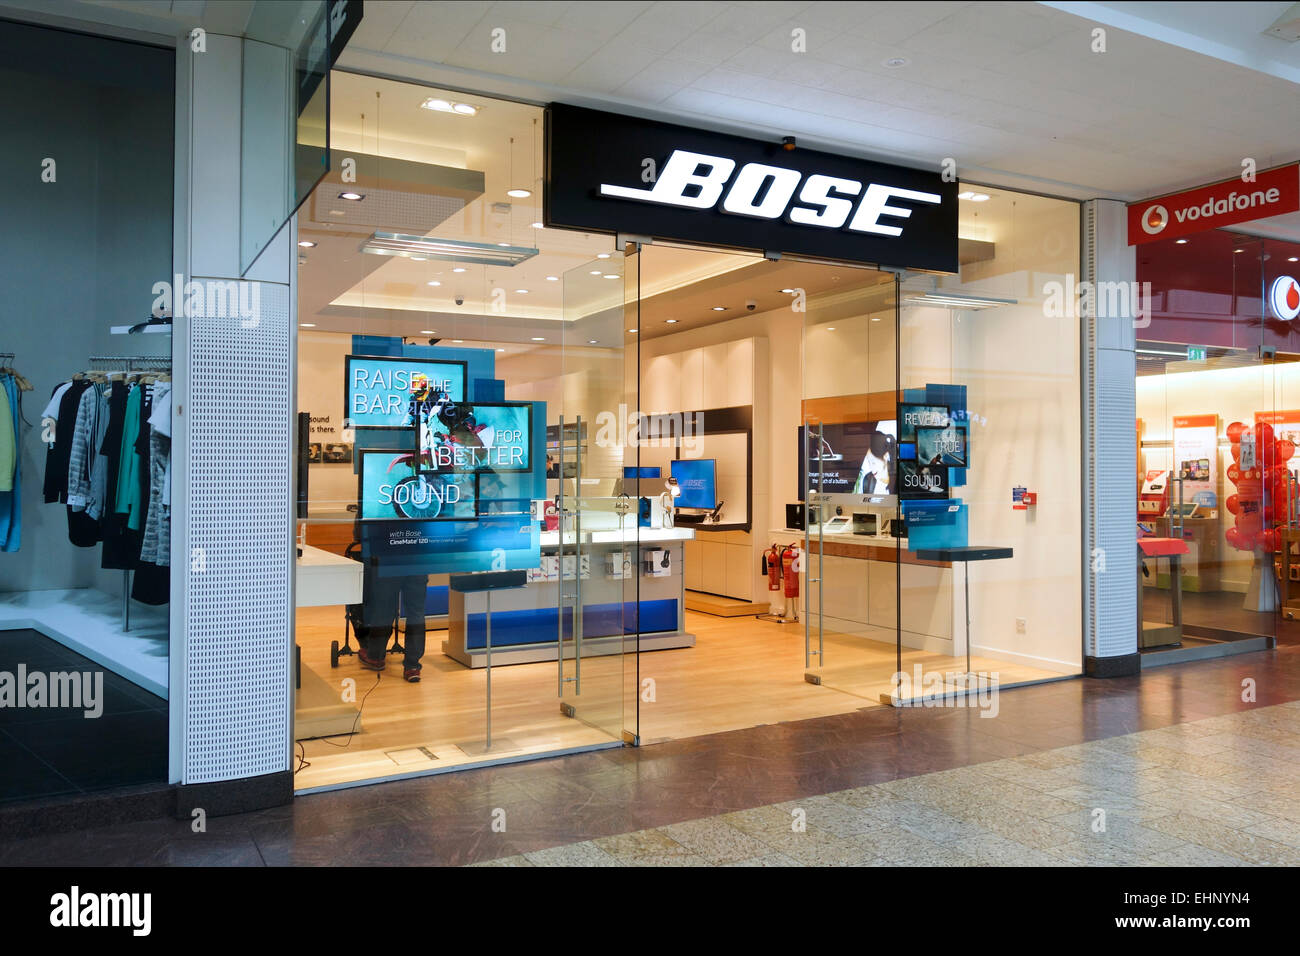 bose outlet store. bose store the mall cribbs causeway, bristol outlet e